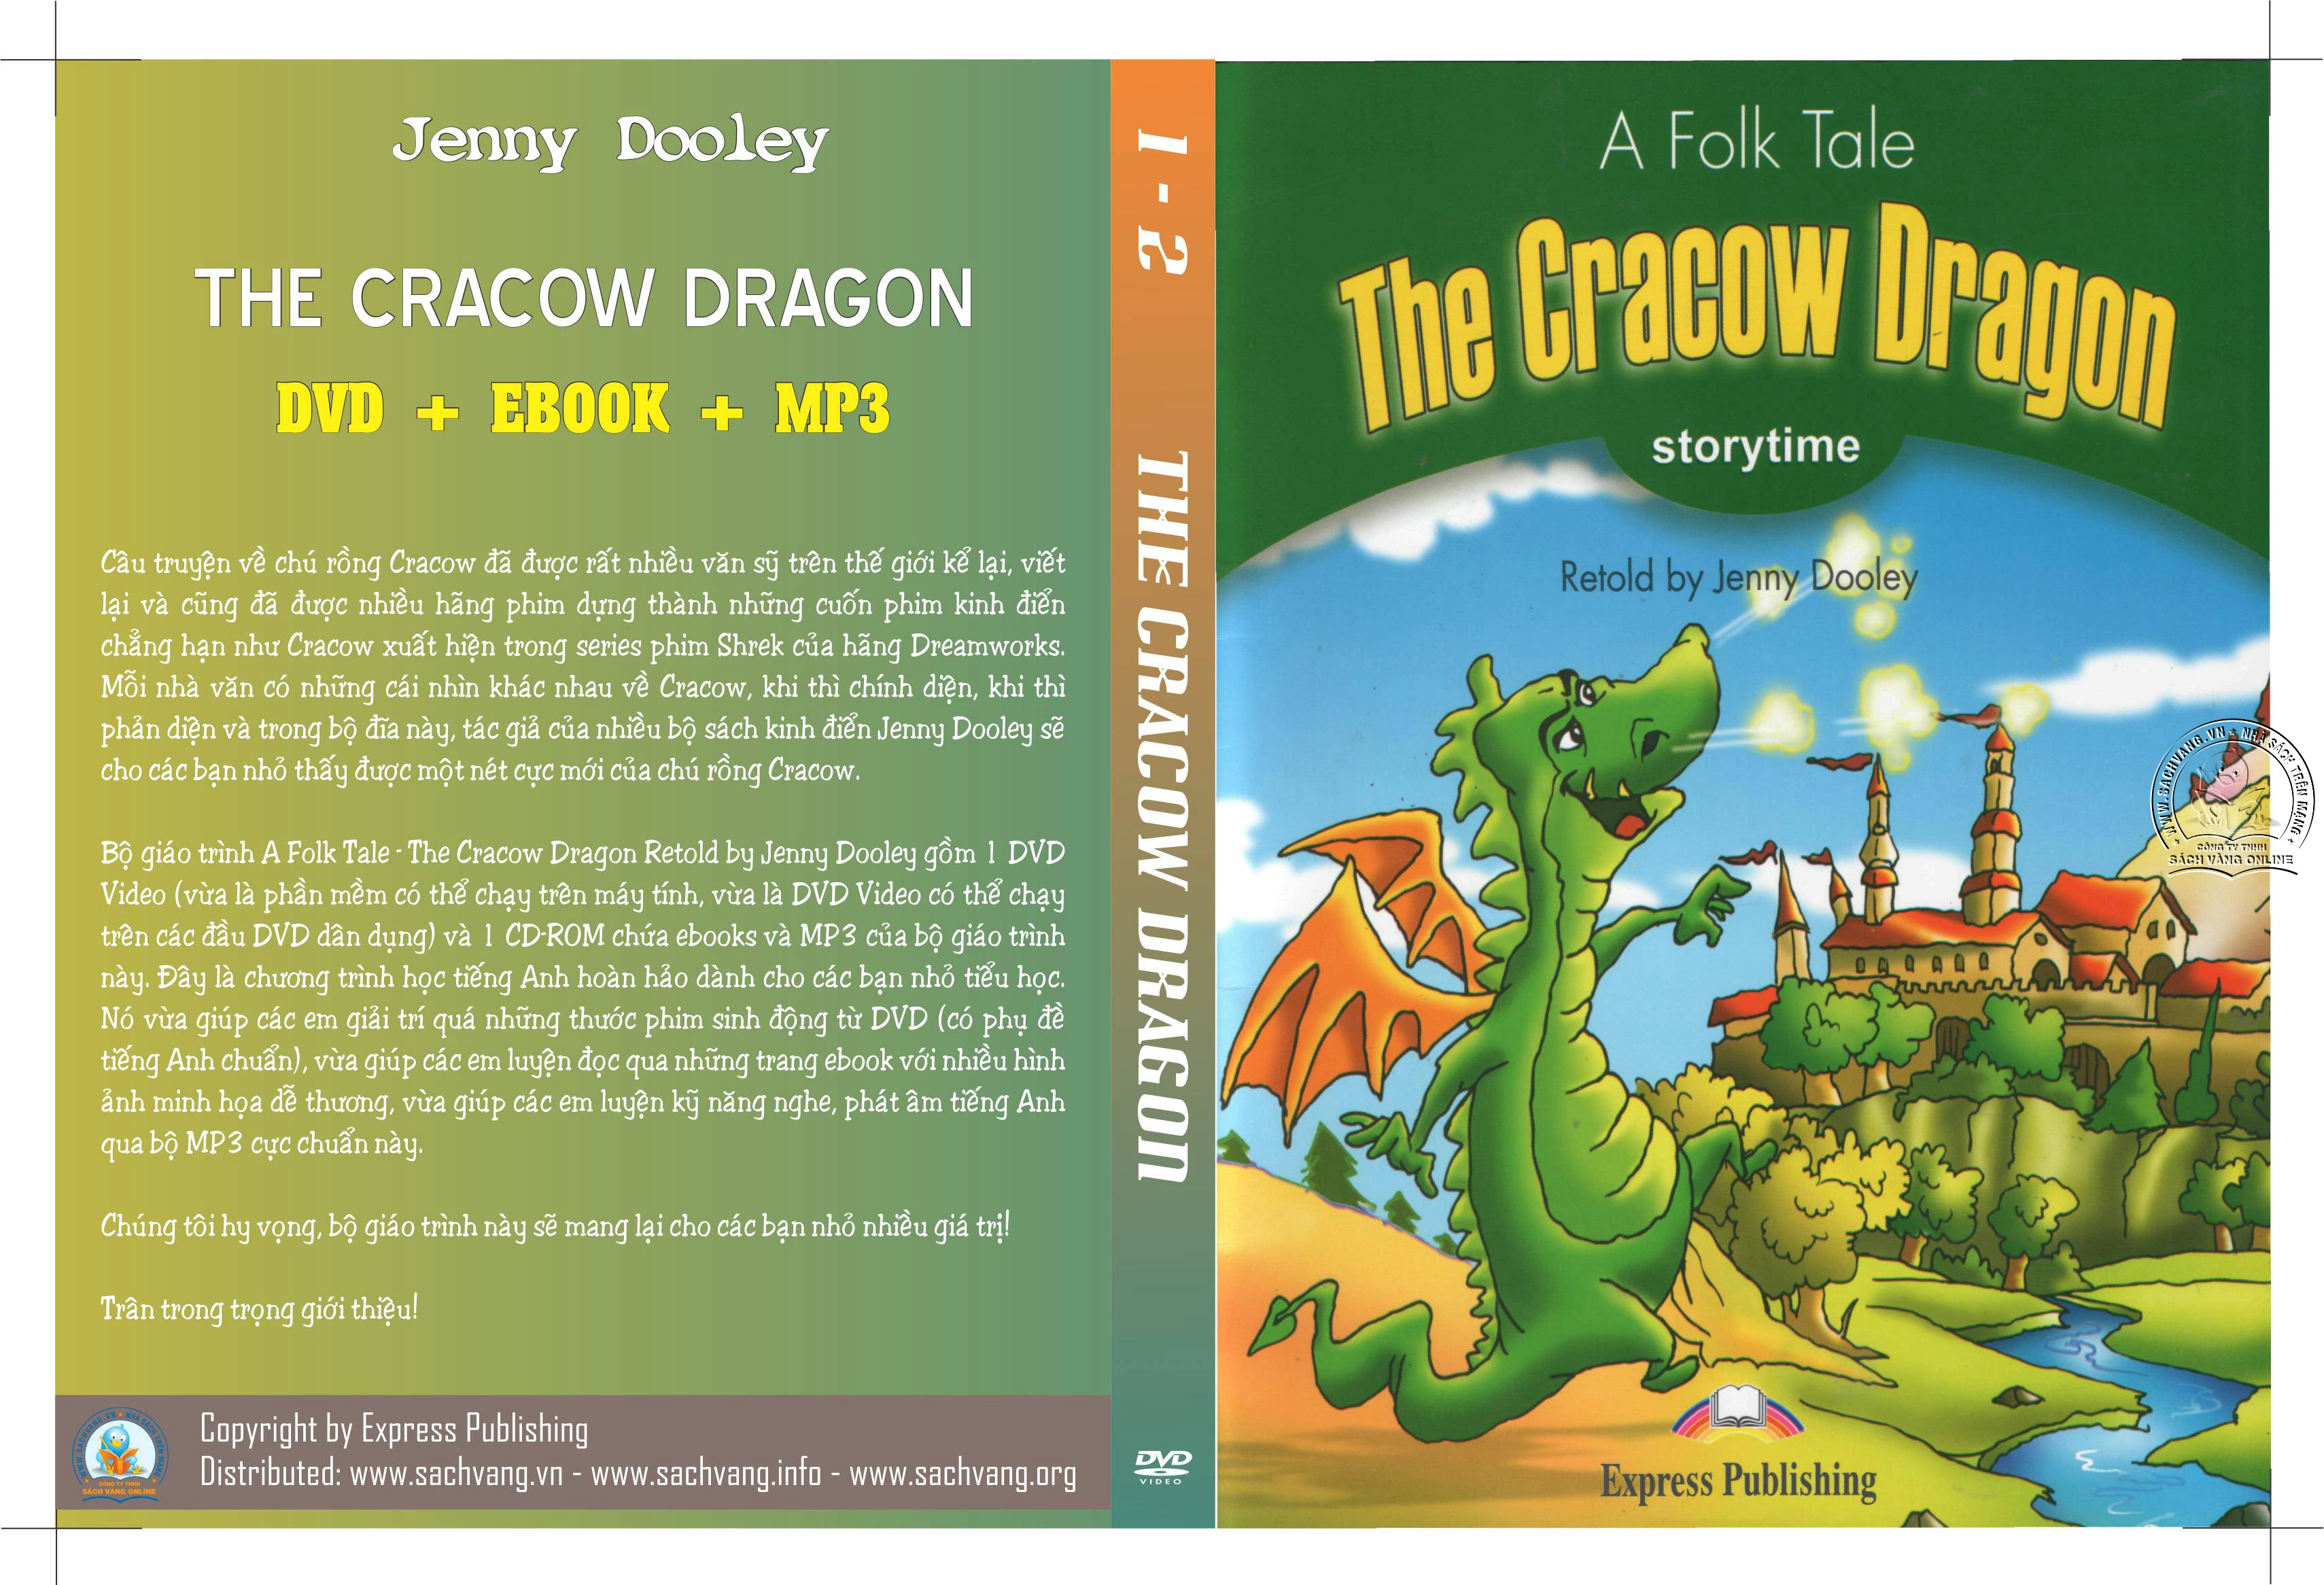 A Folk Tale - The Cracow Dragon Retold by Jenny Dooley cover